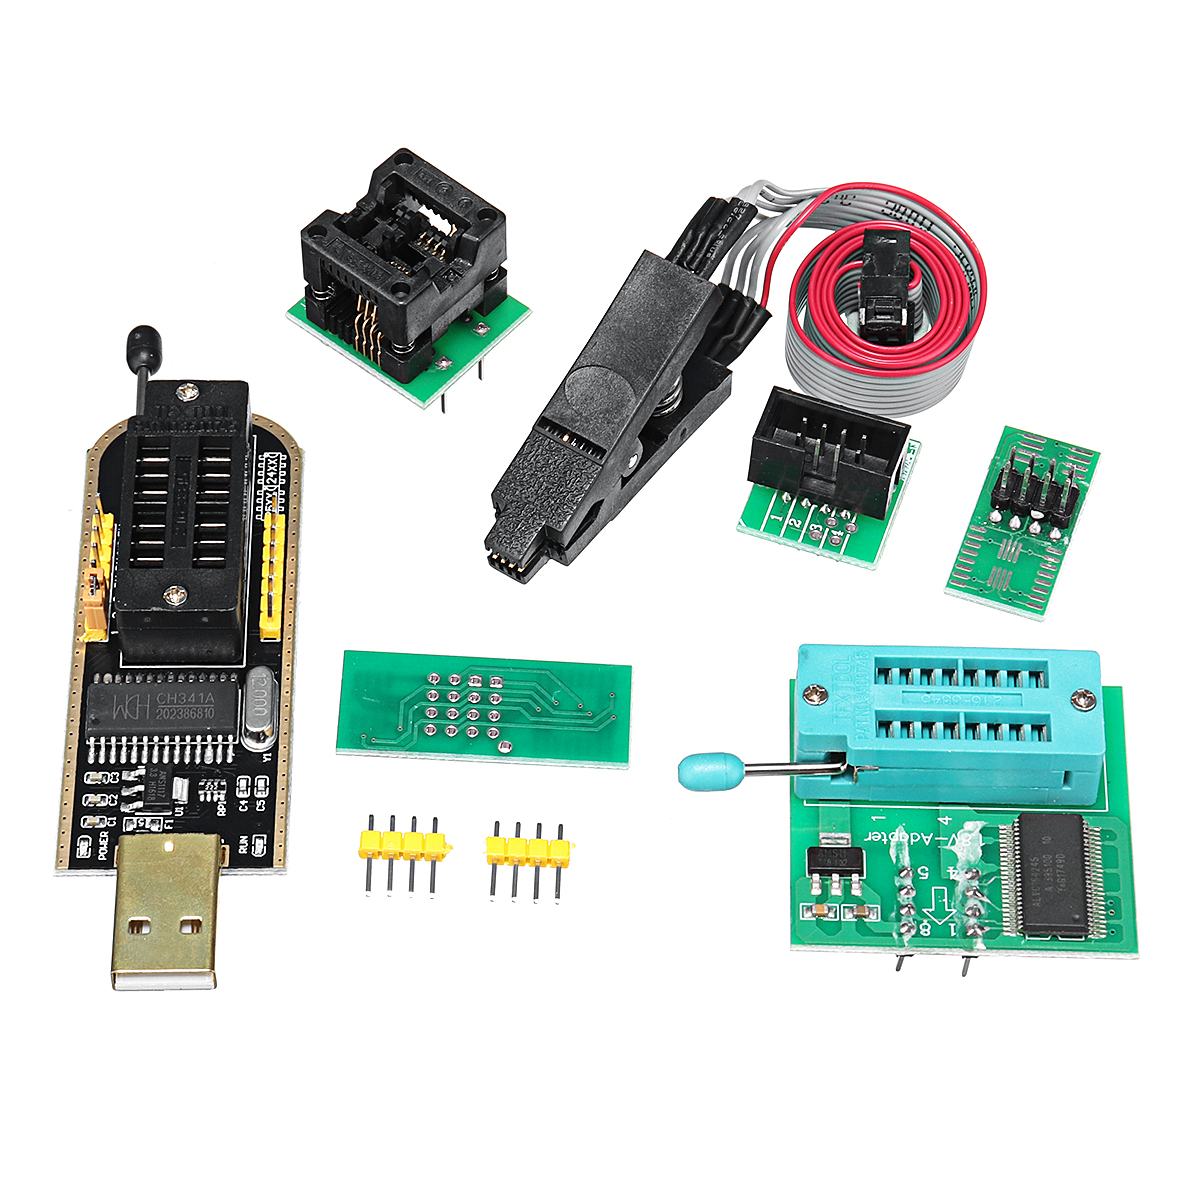 EEPROM Flash BIOS USB Programmer Module CH341A + SOIC8 Clip + 1.8V Adapter + SOIC8 Adapter